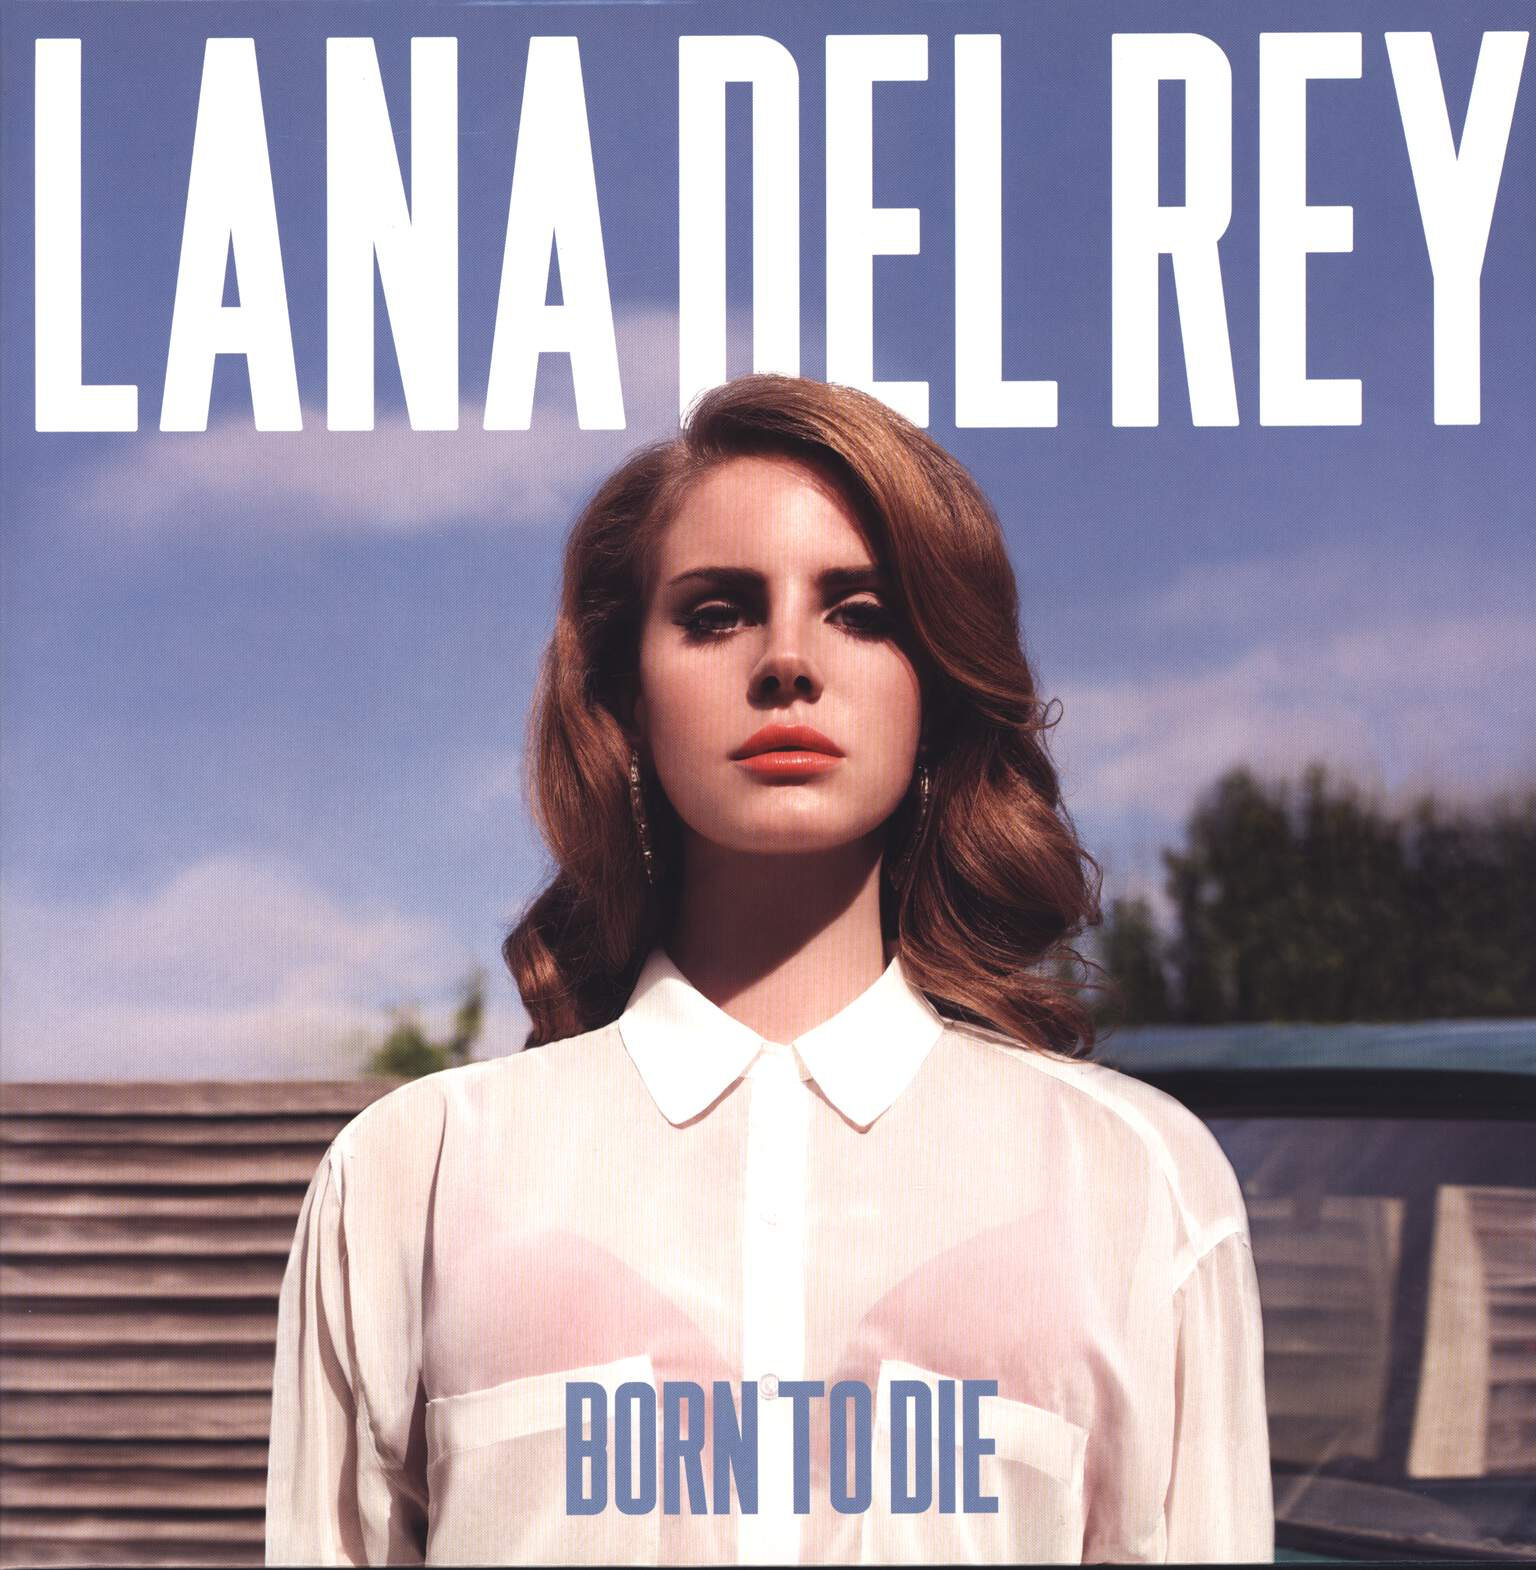 Lana Del Rey: Born To Die, LP (Vinyl)